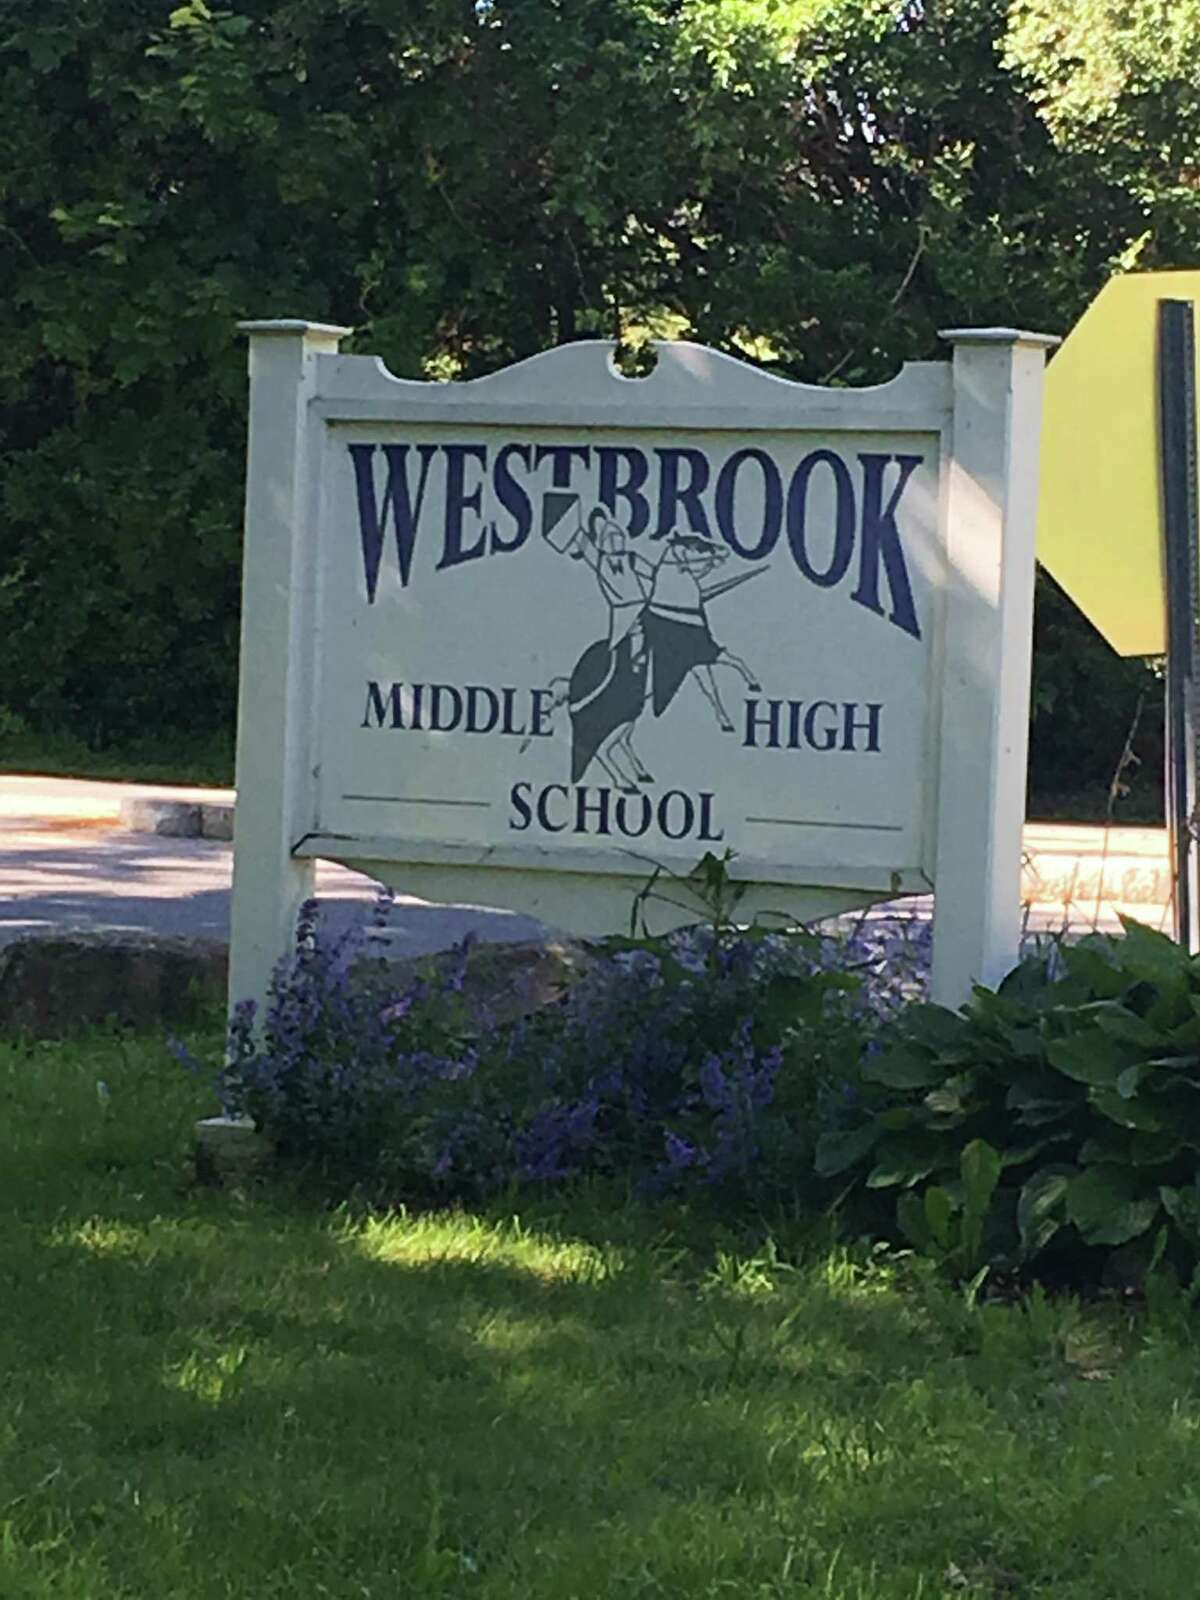 Westbrook High School